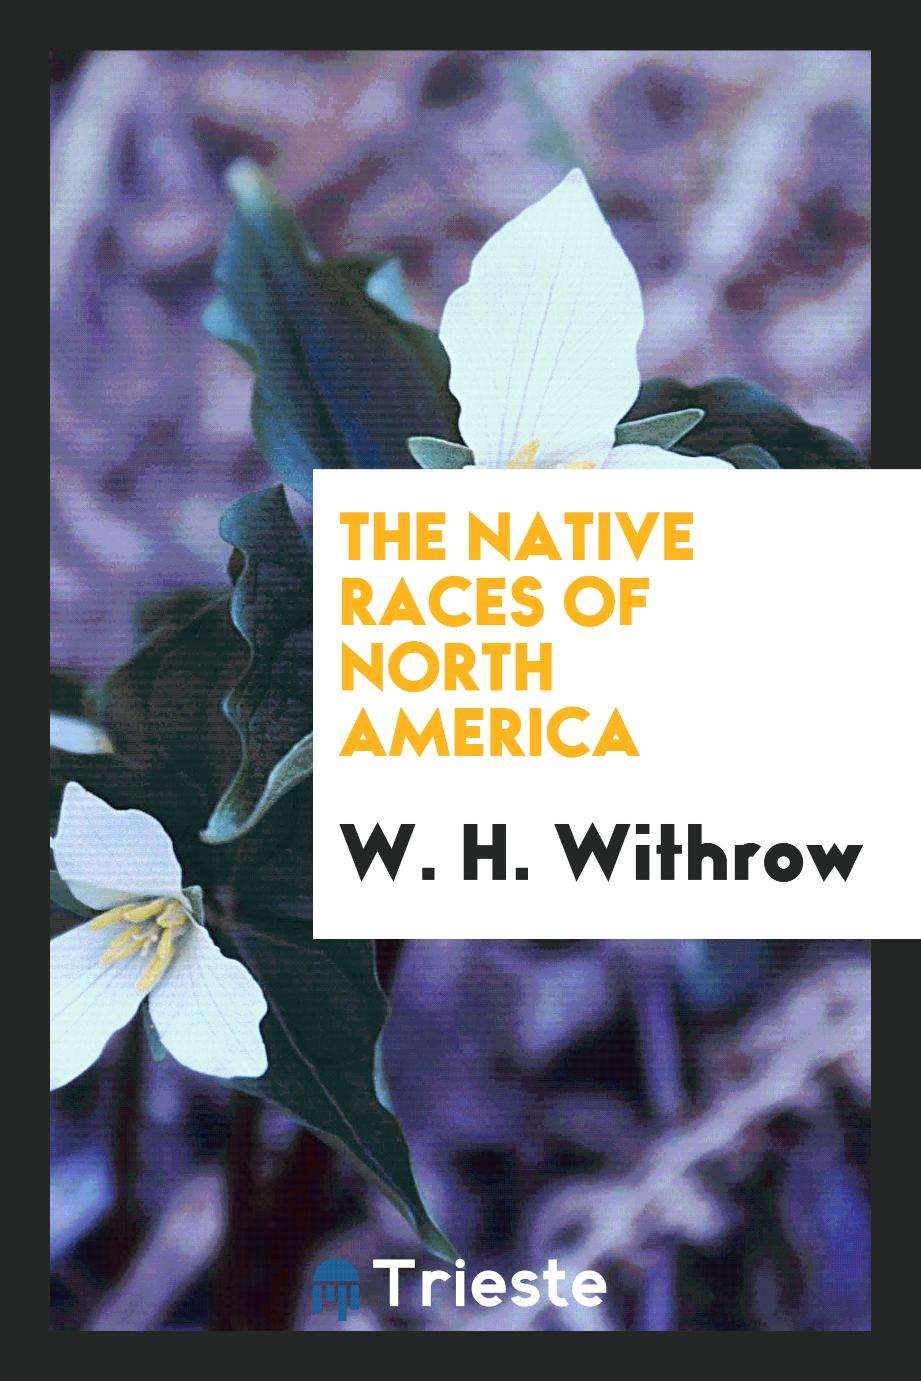 W. H. Withrow - The Native Races of North America